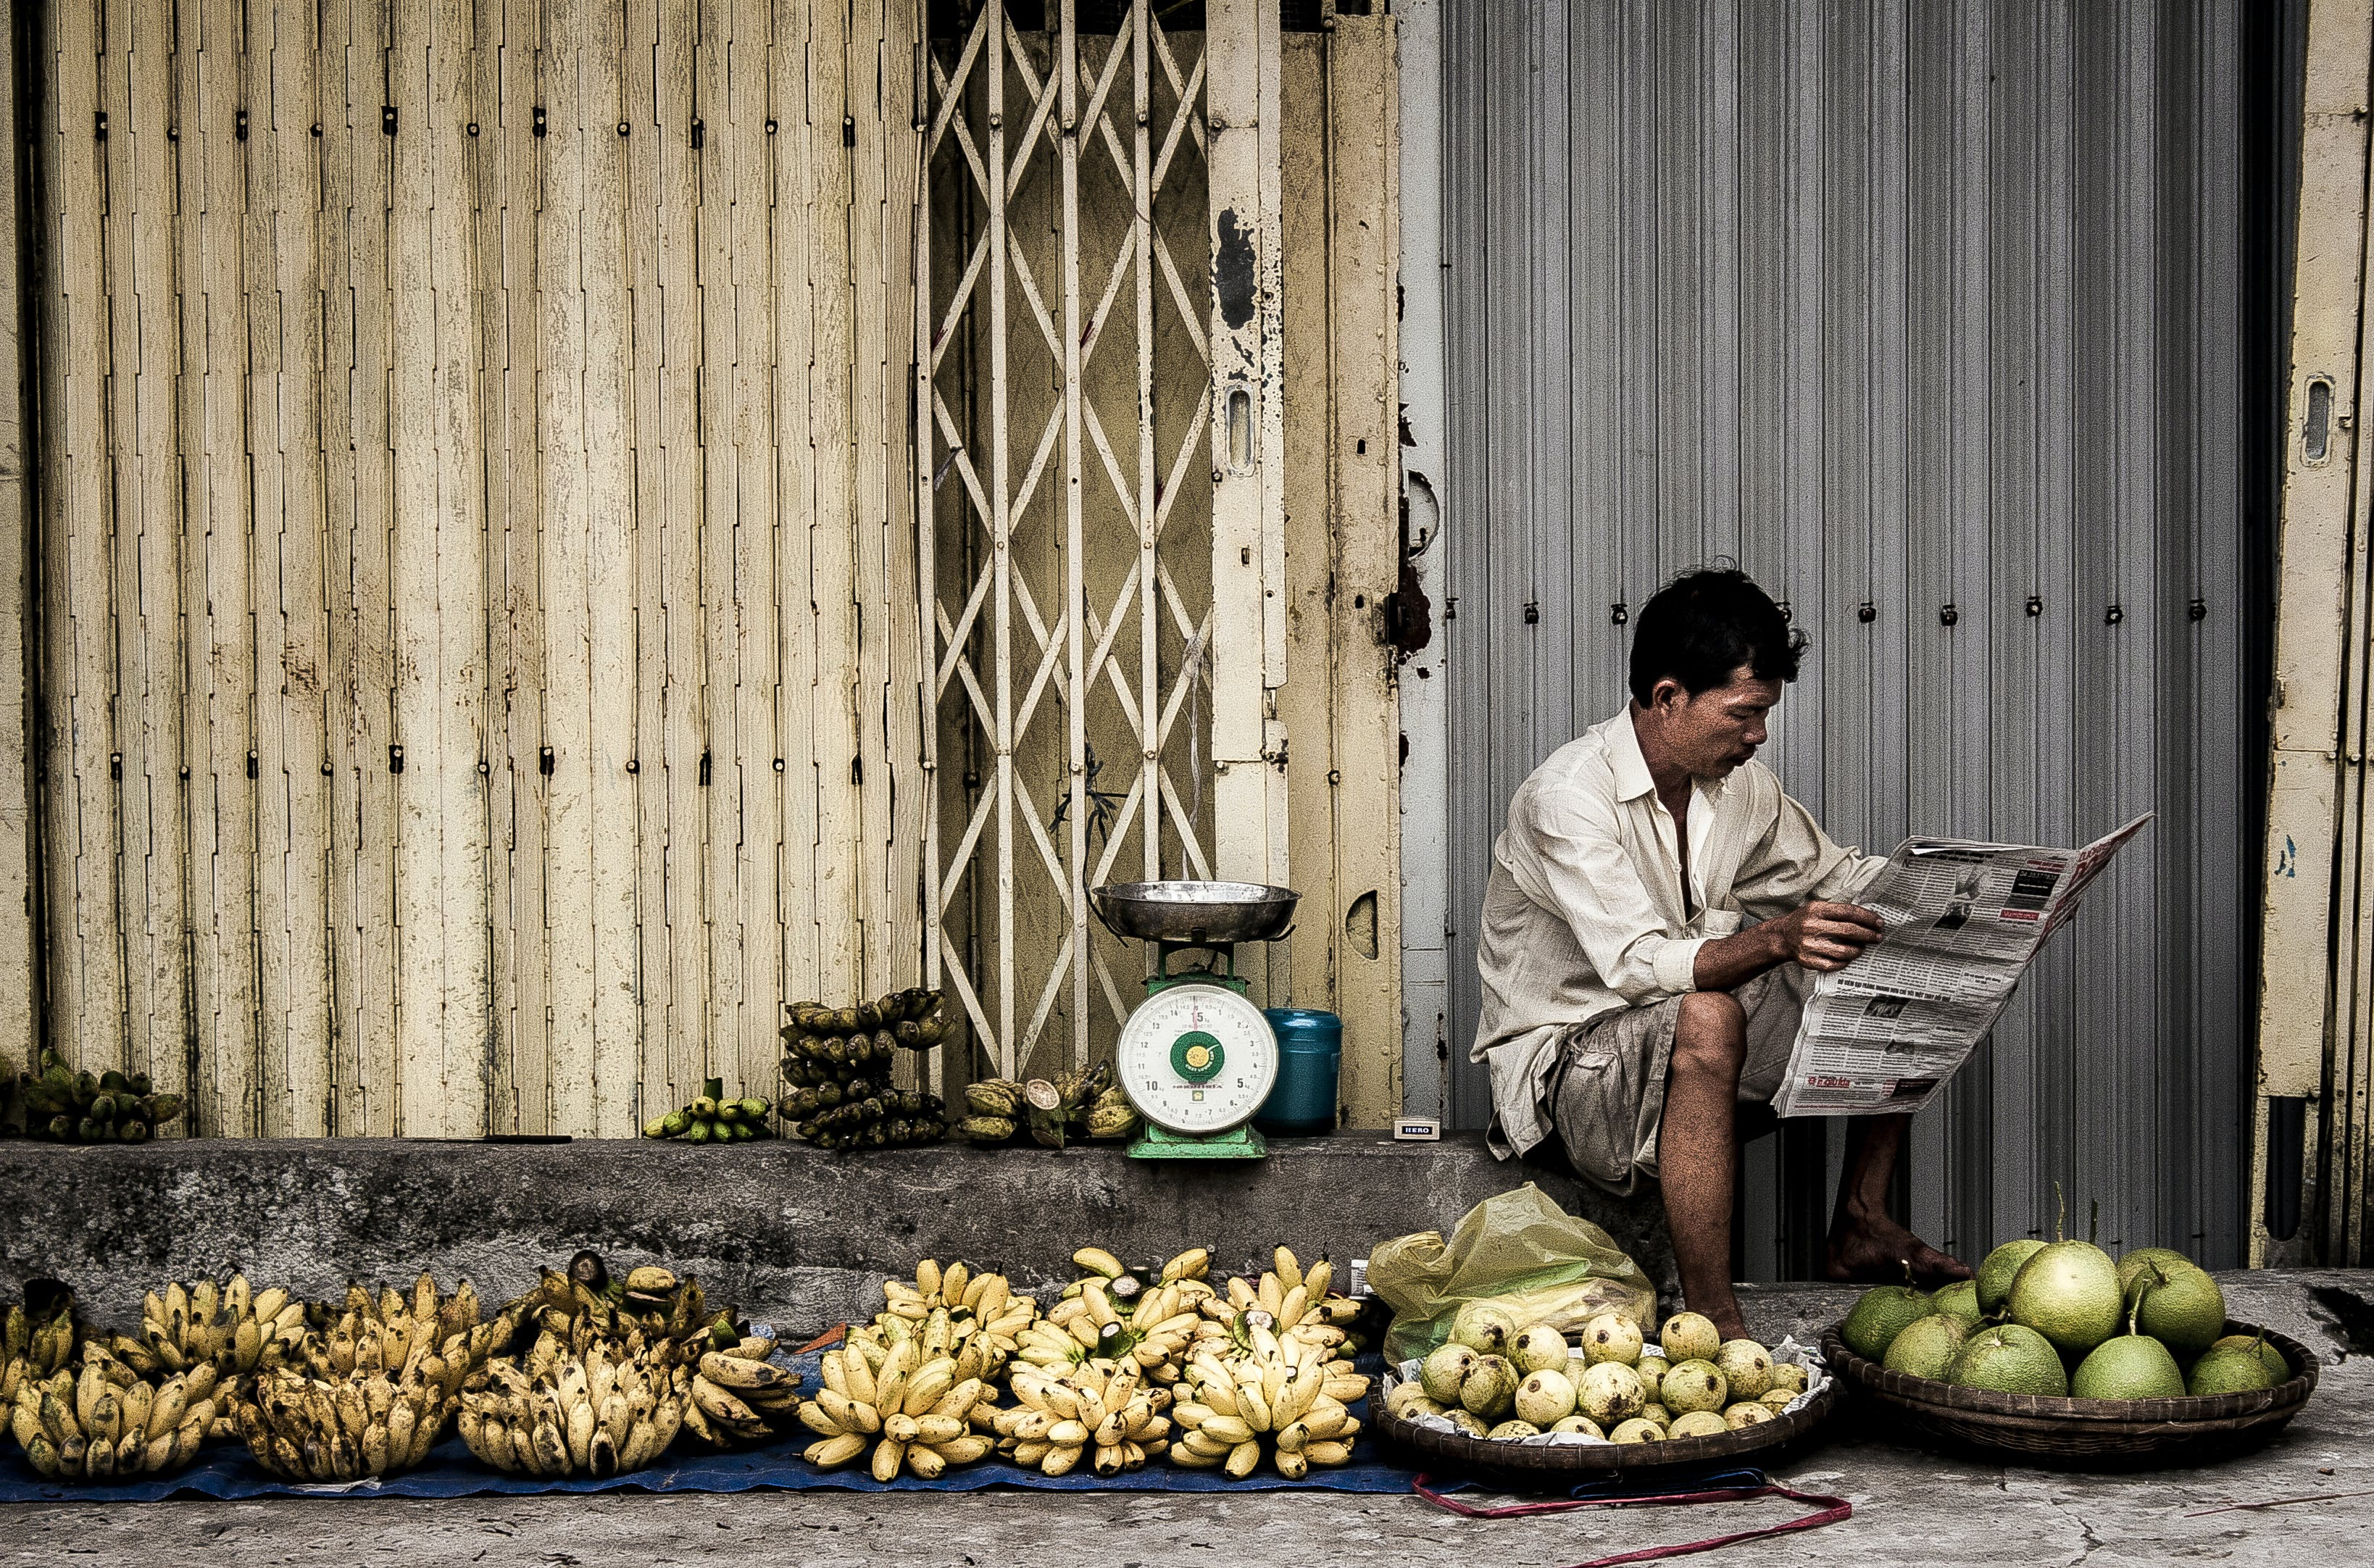 Man Sitting Near Fruits